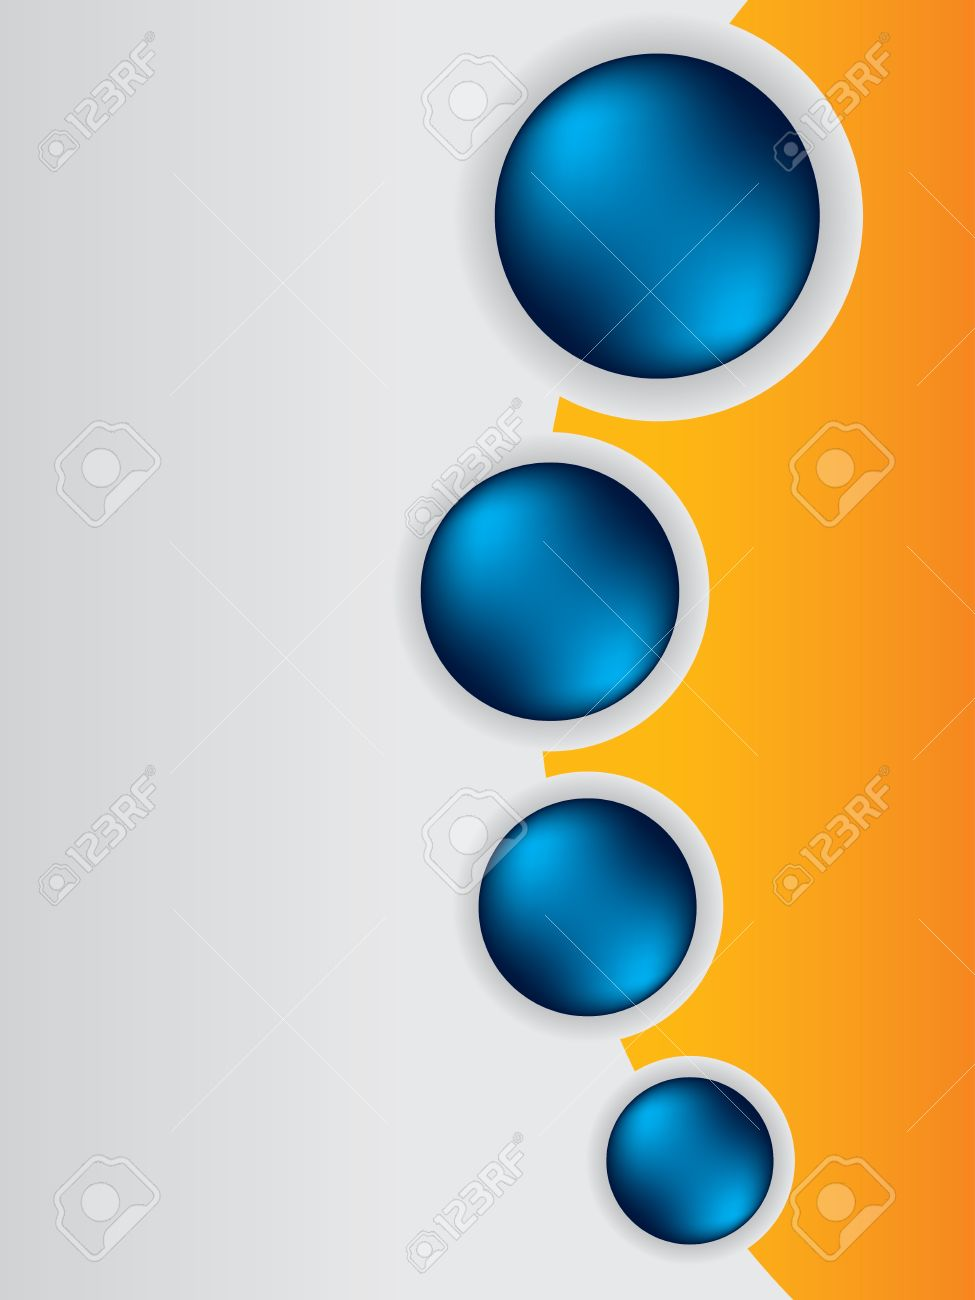 cool brochure design background template with blue buttons royalty